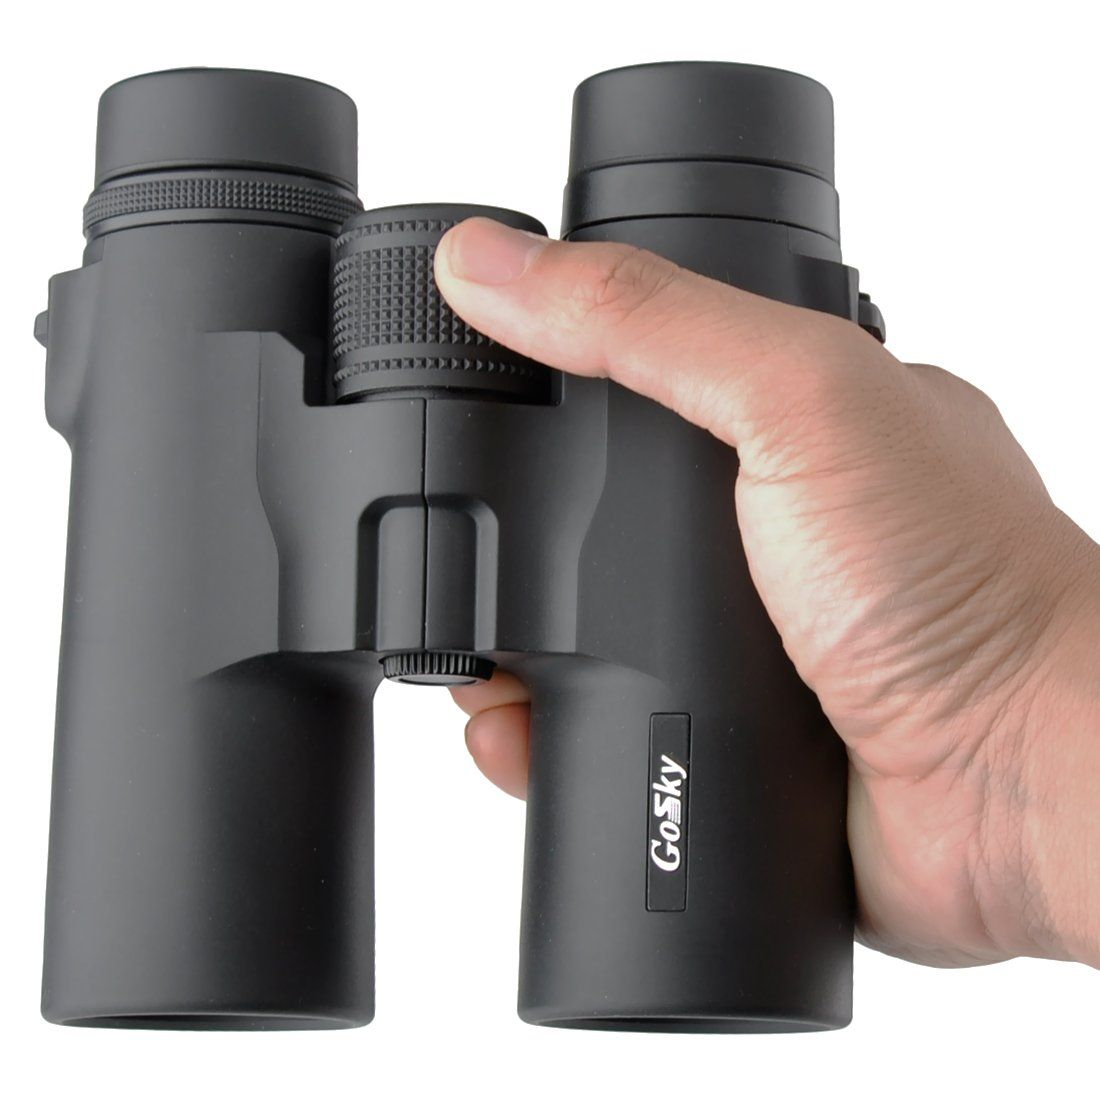 Gosky 10x42 Roof Prism Binoculars For Adults Hd Professional Binoculars For Bird Watching Travel St Binoculars Binoculars For Kids Bird Watching